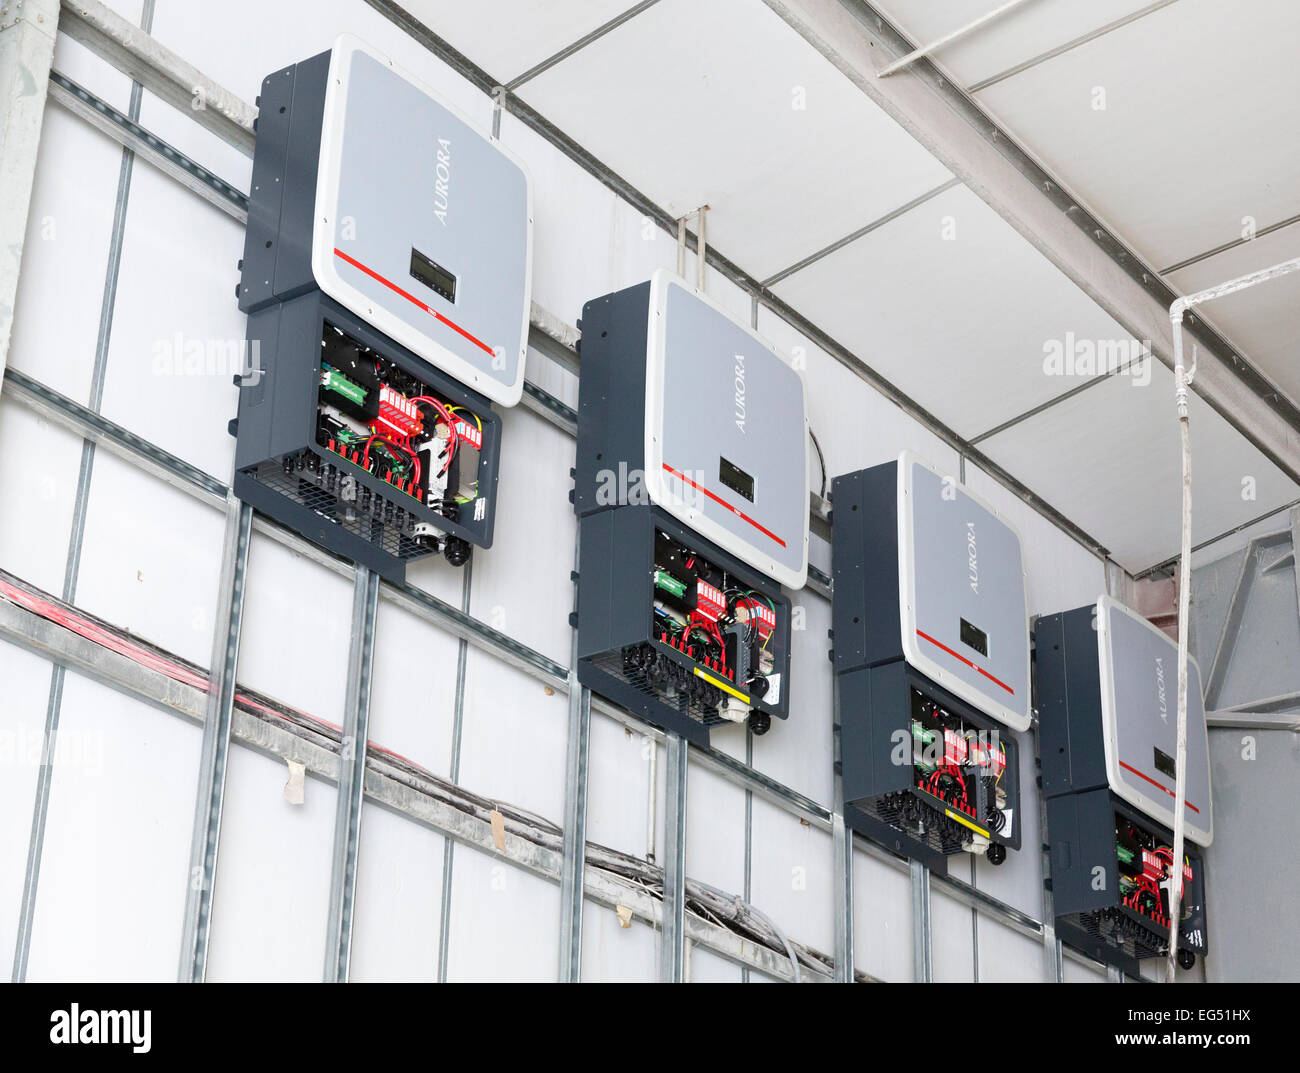 Inverter Stock Photos Amp Inverter Stock Images Alamy